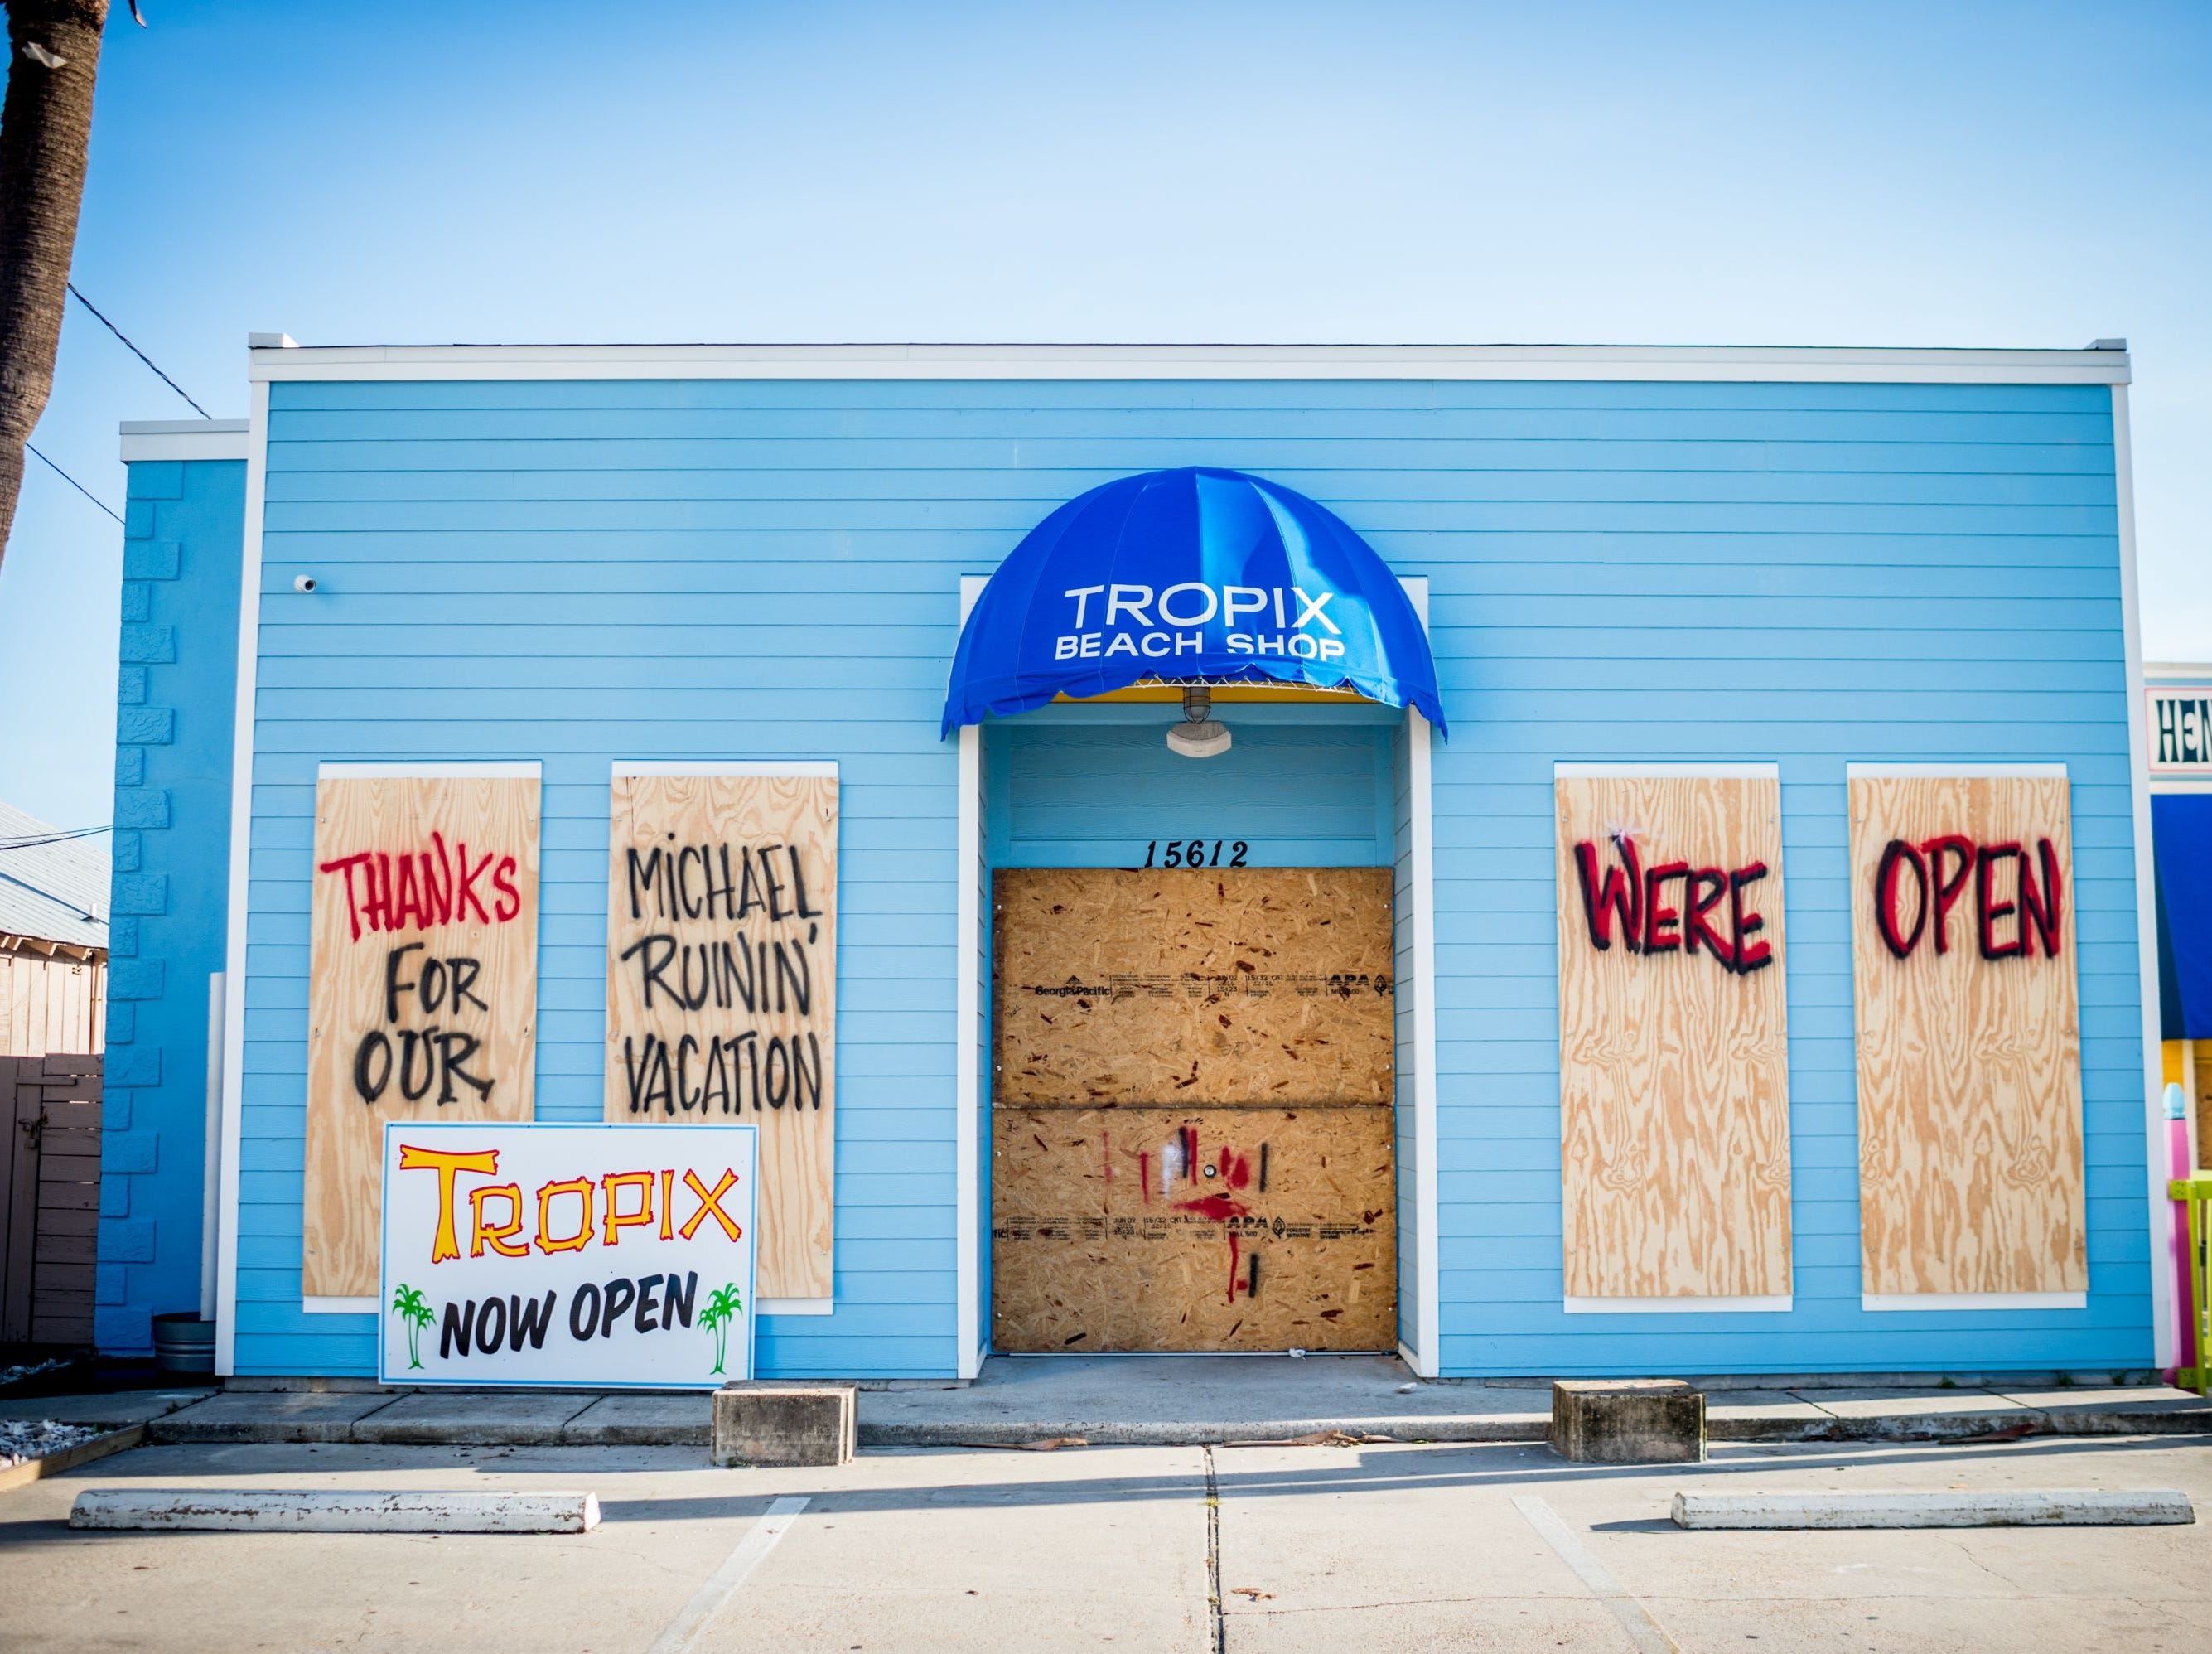 A boarded up tourist shop in Panama City Beach, Florida in the aftermath of Hurricane Michael on October 11, 2018. - Residents of the Florida Panhandle woke to scenes of devastation Thursday after Michael tore a path through the coastal region as a powerful hurricane that killed at least two people.